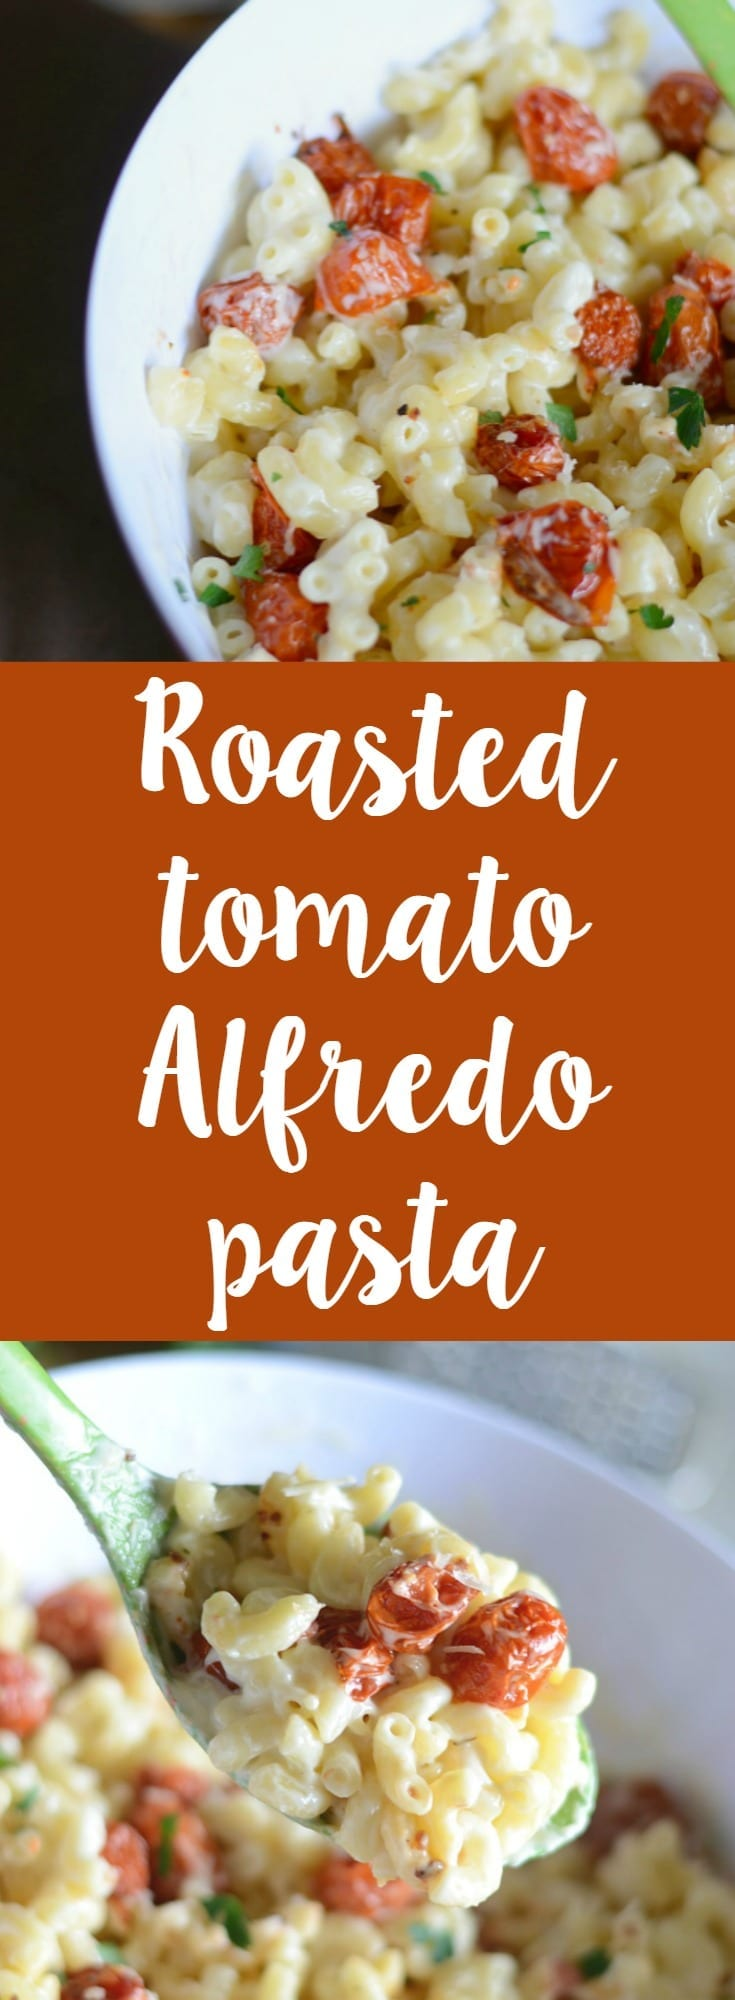 Roasted tomato Alfredo pasta recipe! Make this easy pasta at home